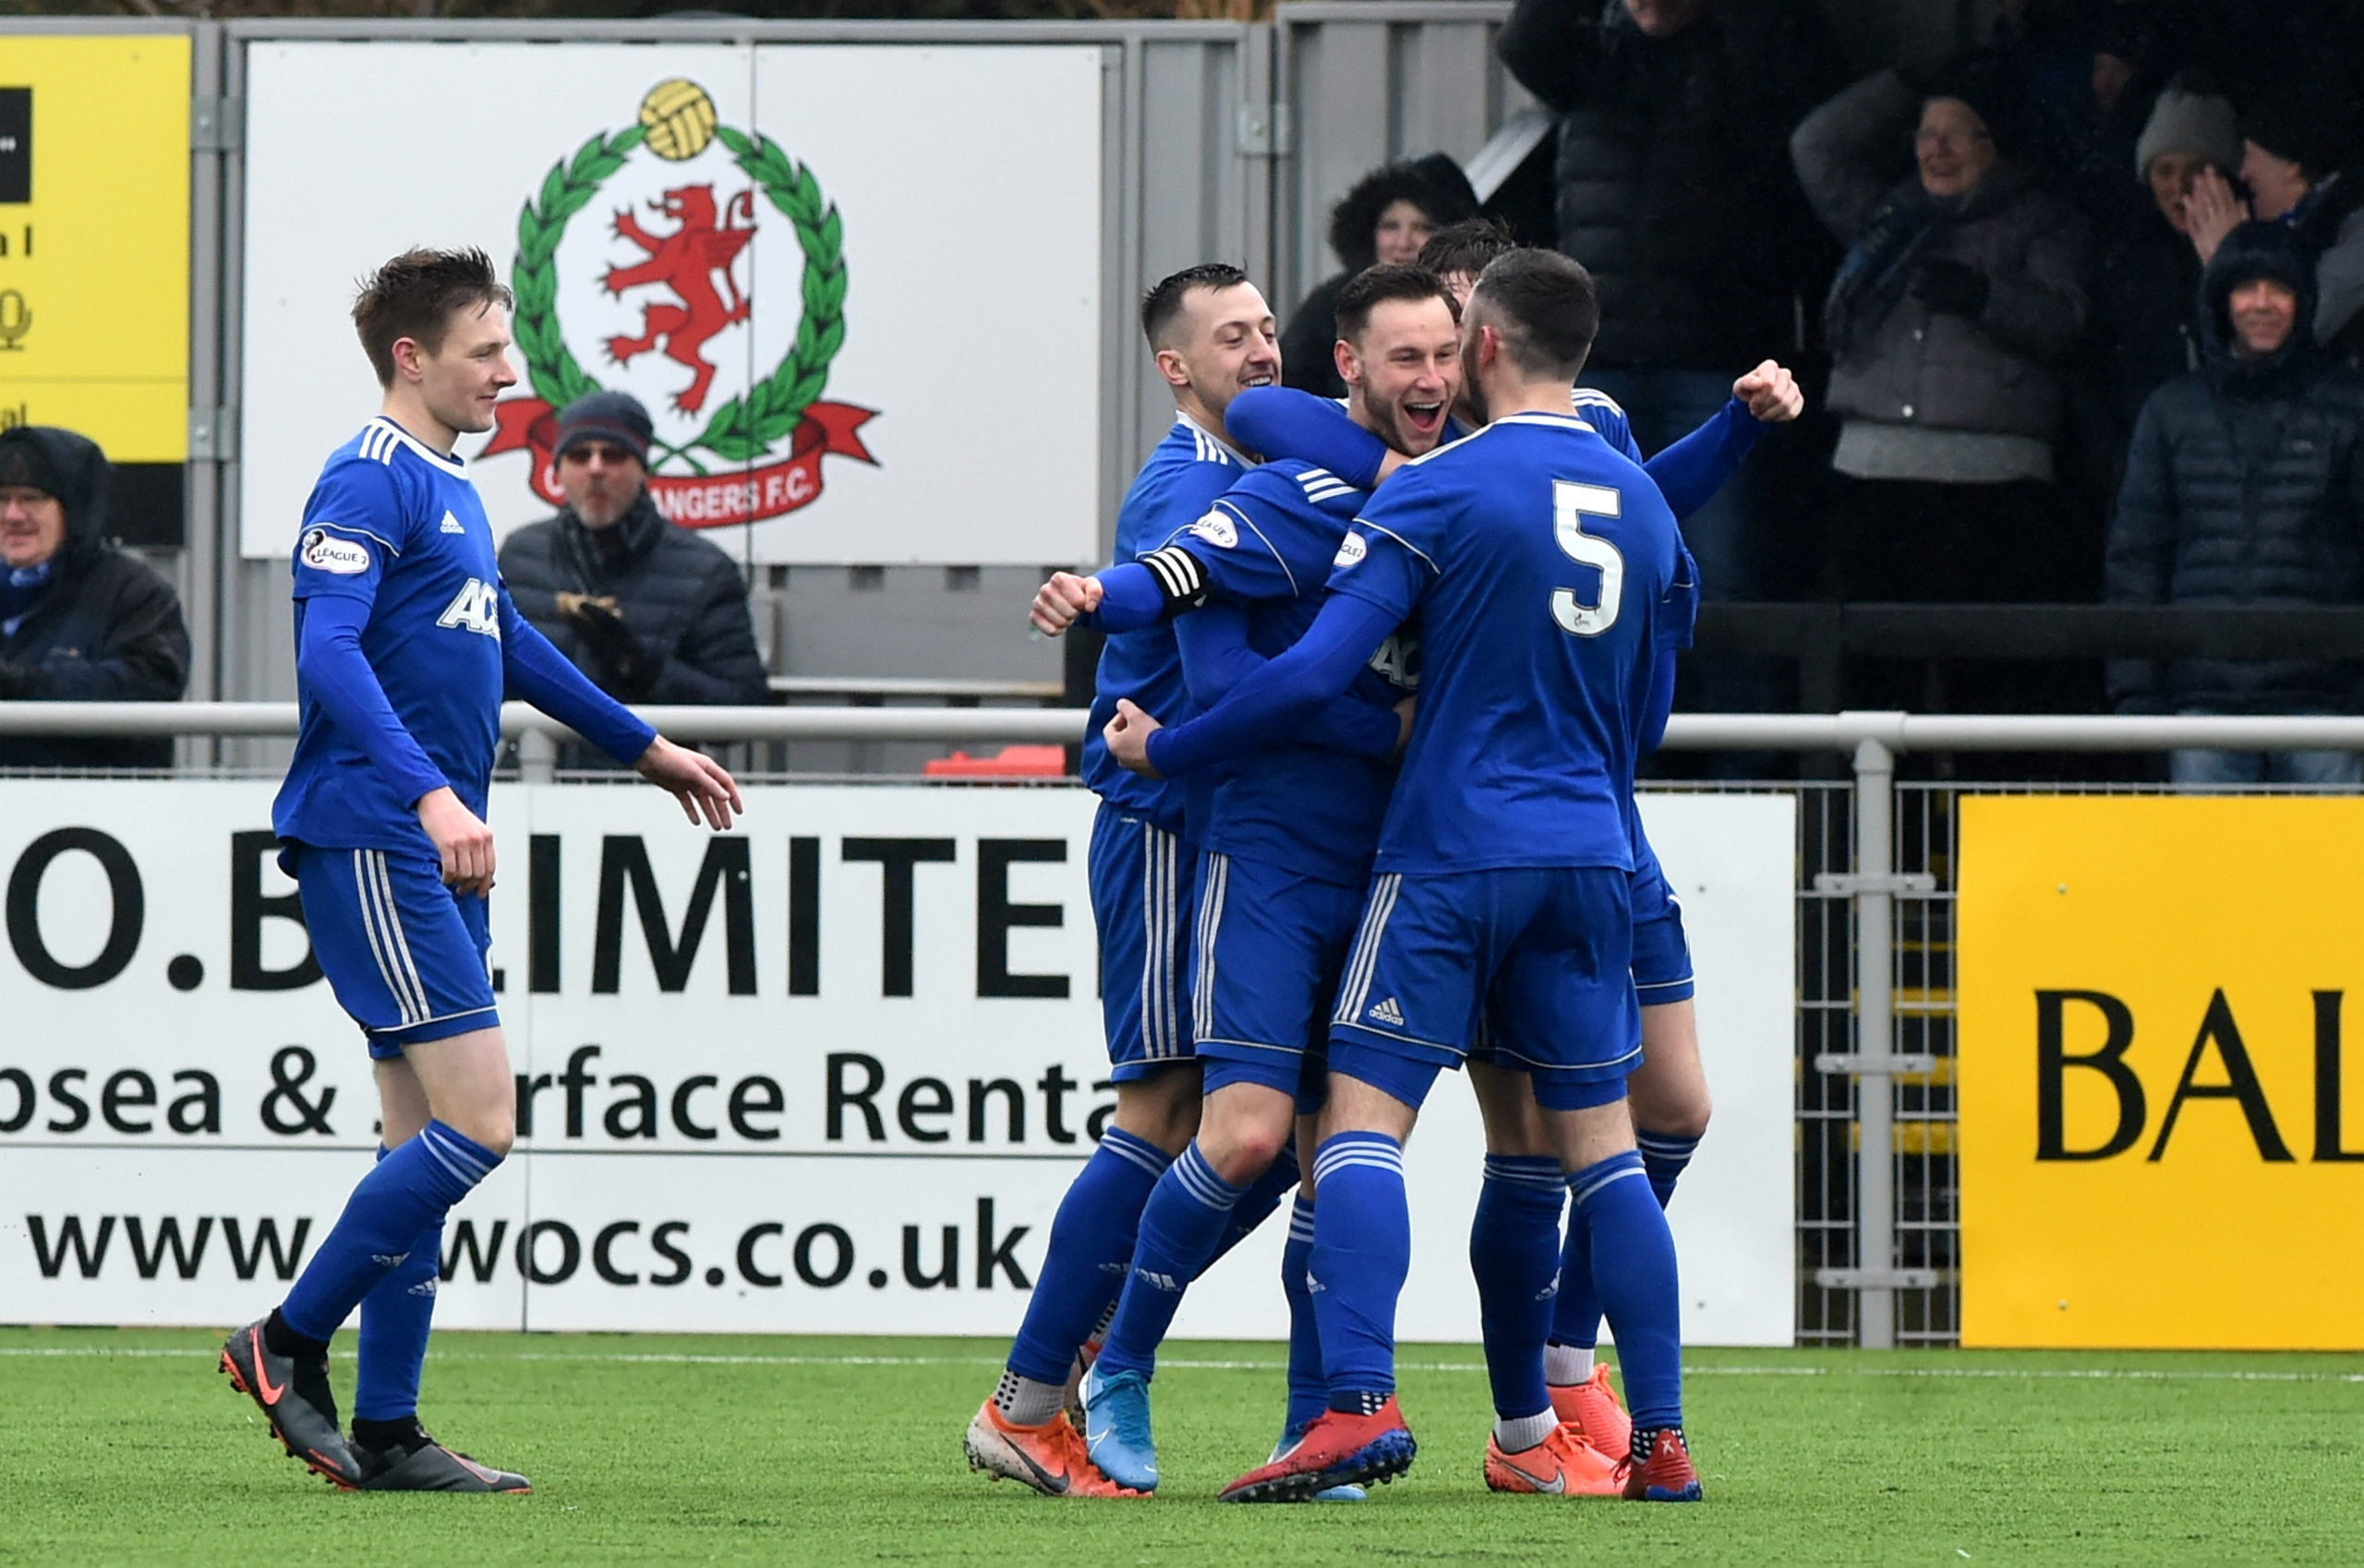 Cove Rangers are due to face Hibernian on October 10